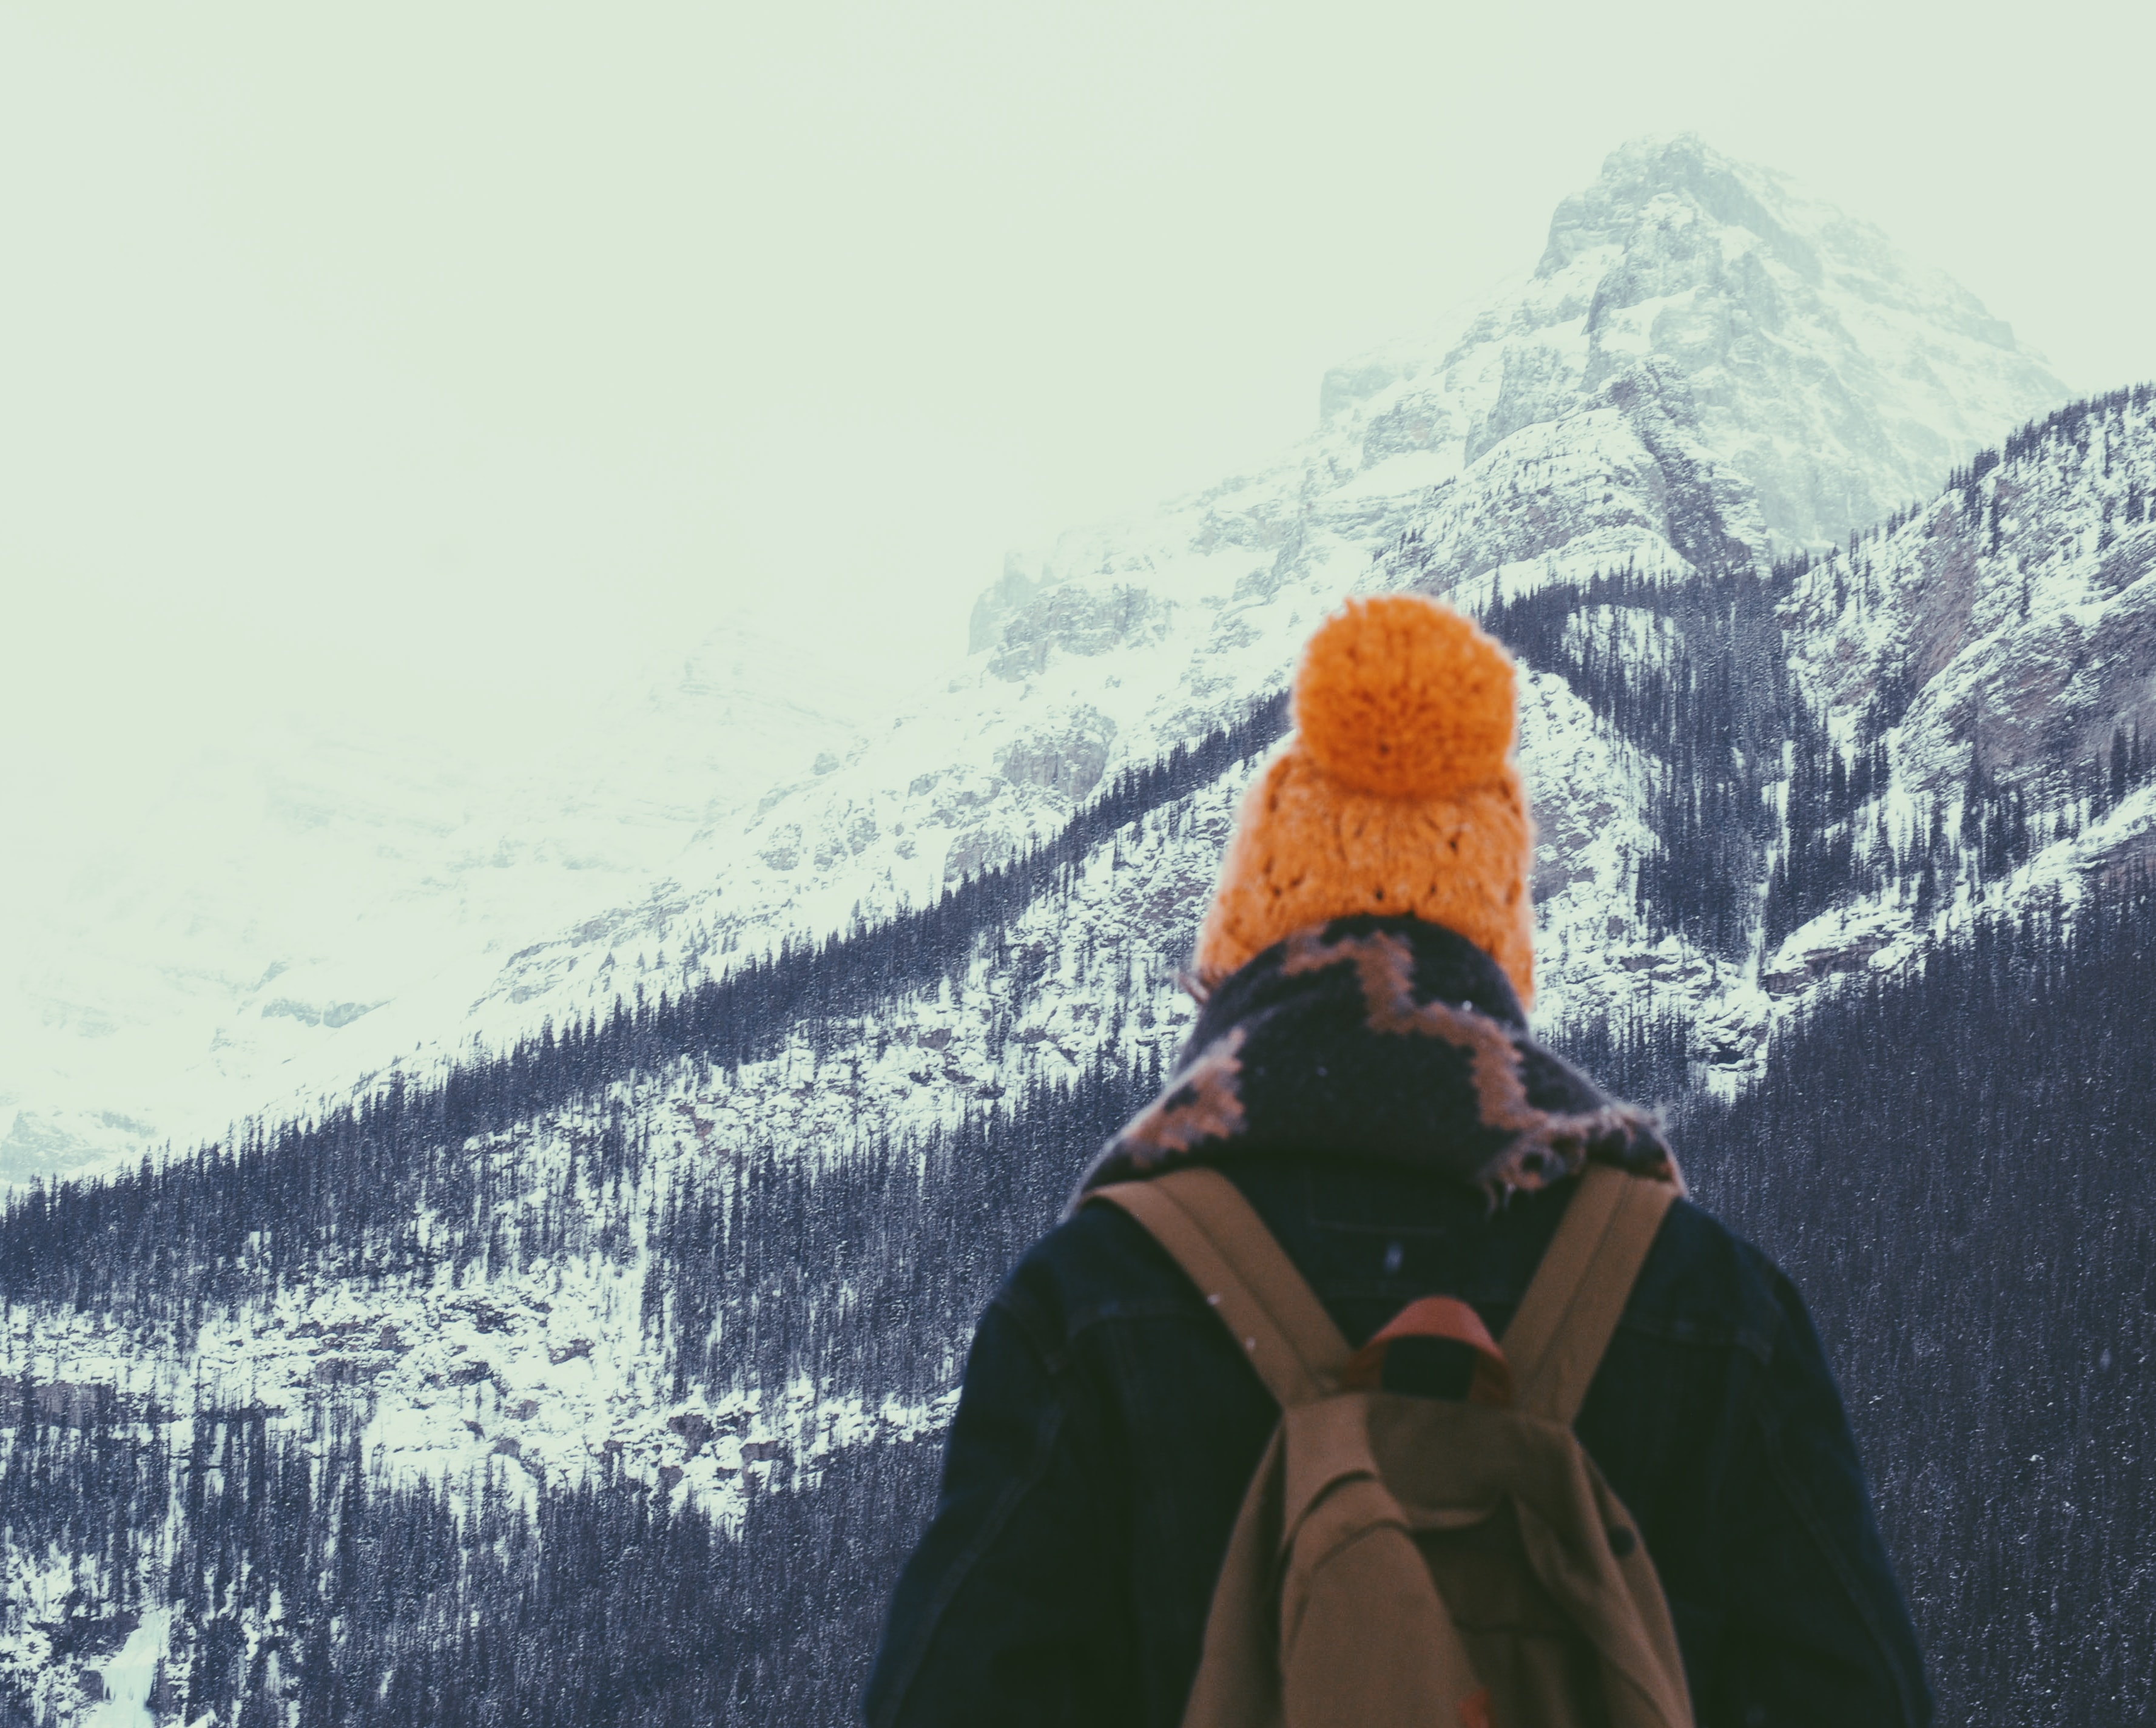 A person wearing a knit hat, big scarf, denim jacket, and brown backpack looking out at Lake Louise on a snowy winter day